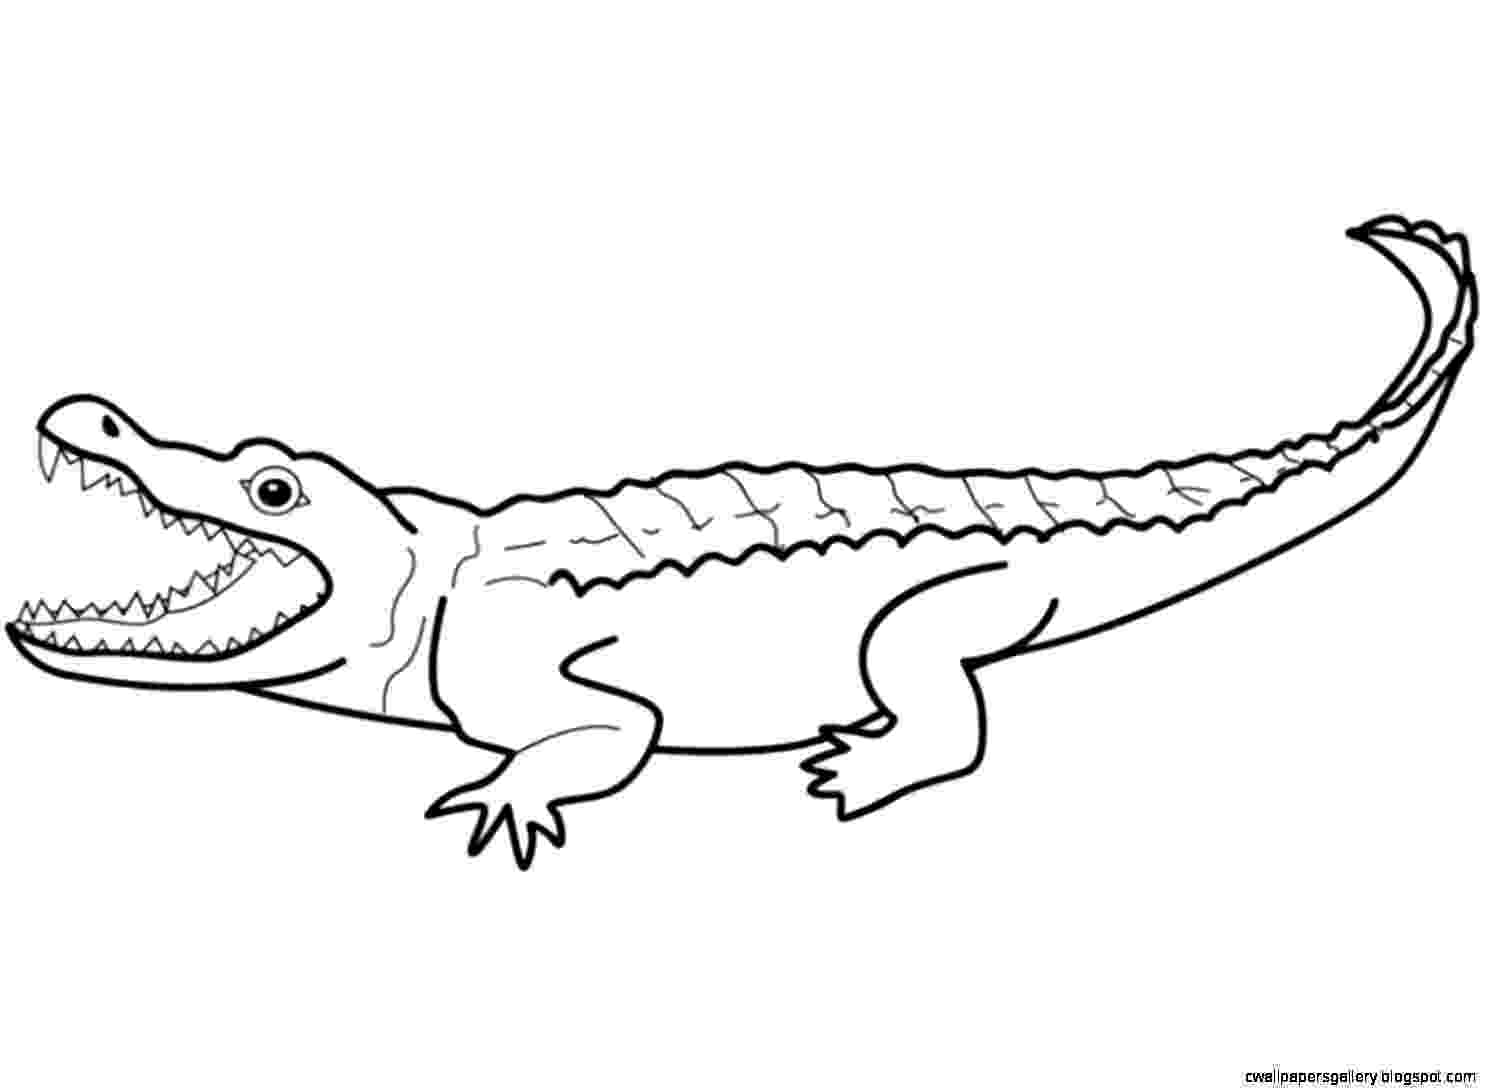 amphibian coloring pages frogs coloring pages downloadable and printable collection amphibian pages coloring